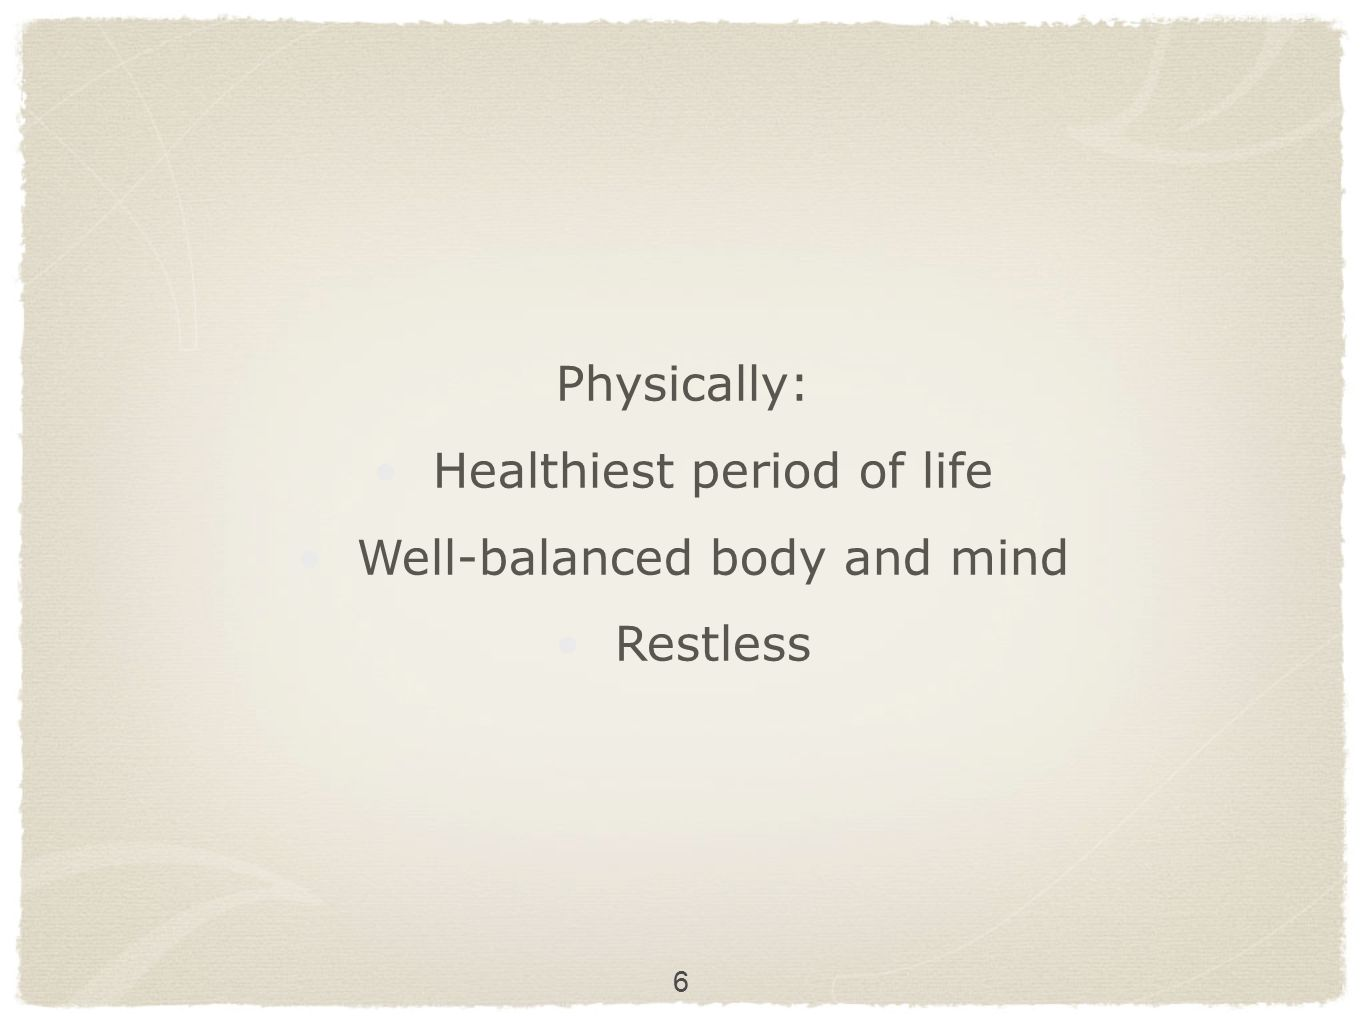 6 Physically: Healthiest period of life Well-balanced body and mind Restless